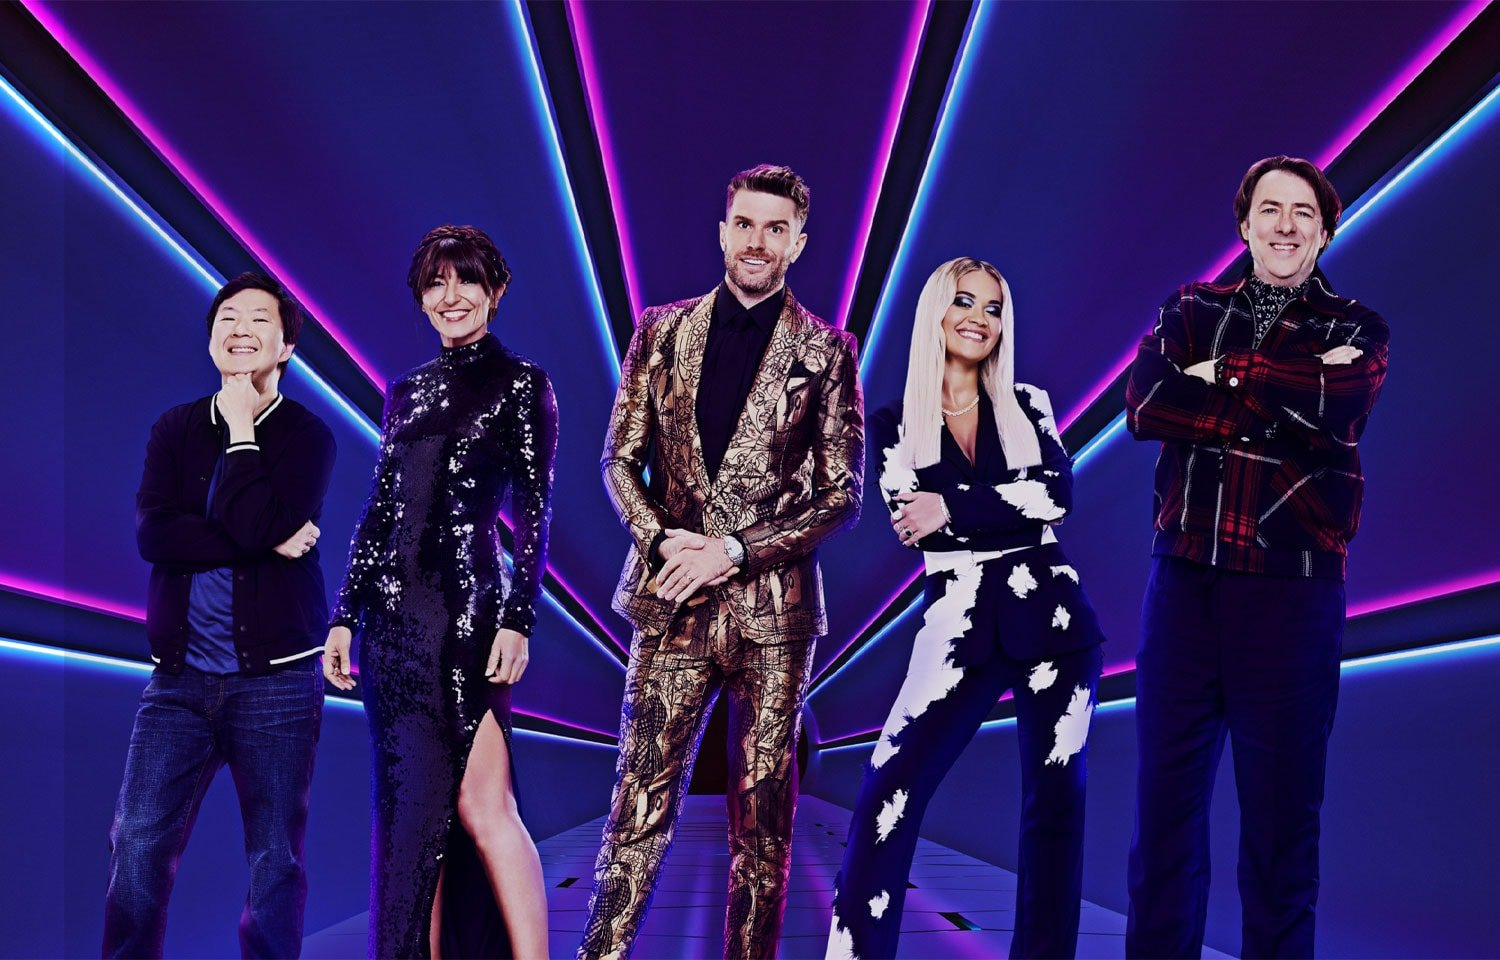 THE MASKED SINGER WITH JOEL DOMMETT AND JONATHAN ROSS